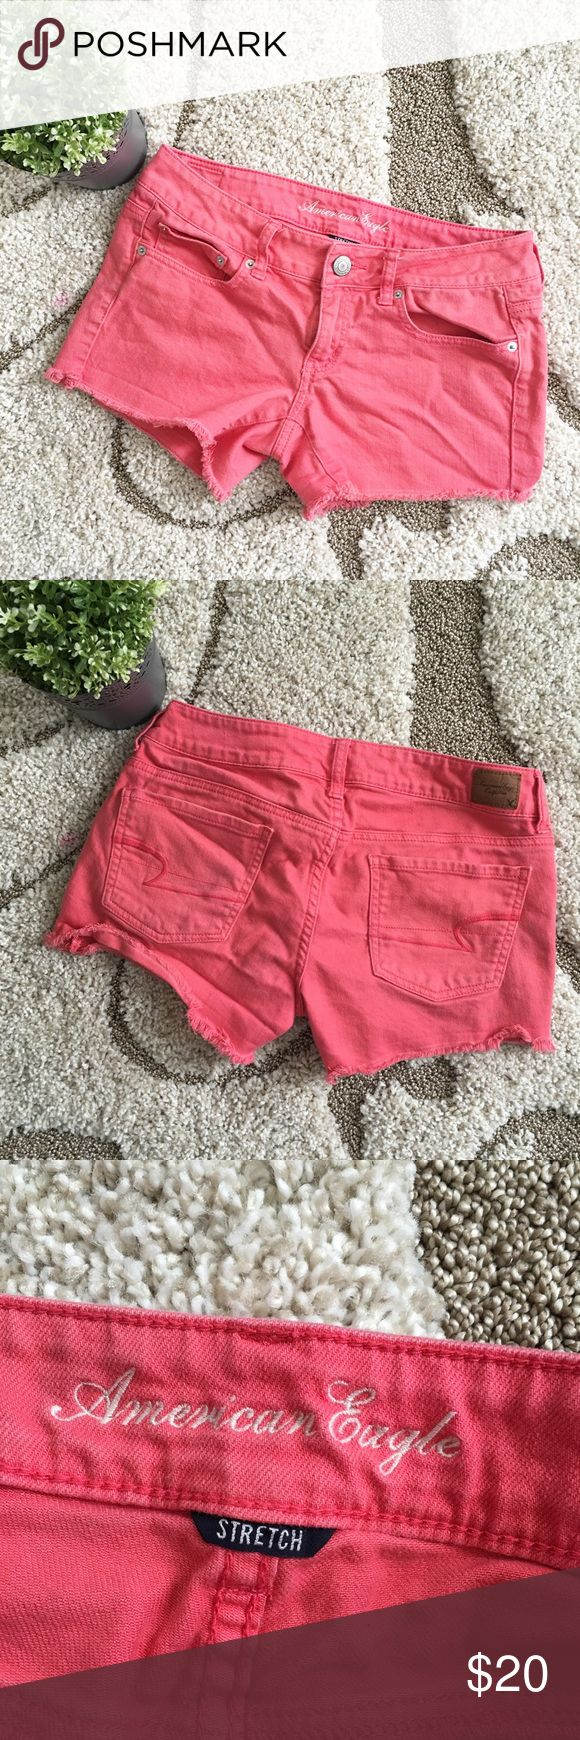 ☀️SALE☀️American Eagle Cut Off Jean Shorts Ameican Eagle pinkish coral cut off Jean shorts. Size 6 American Eagle Outfitters Shorts Jean Shorts